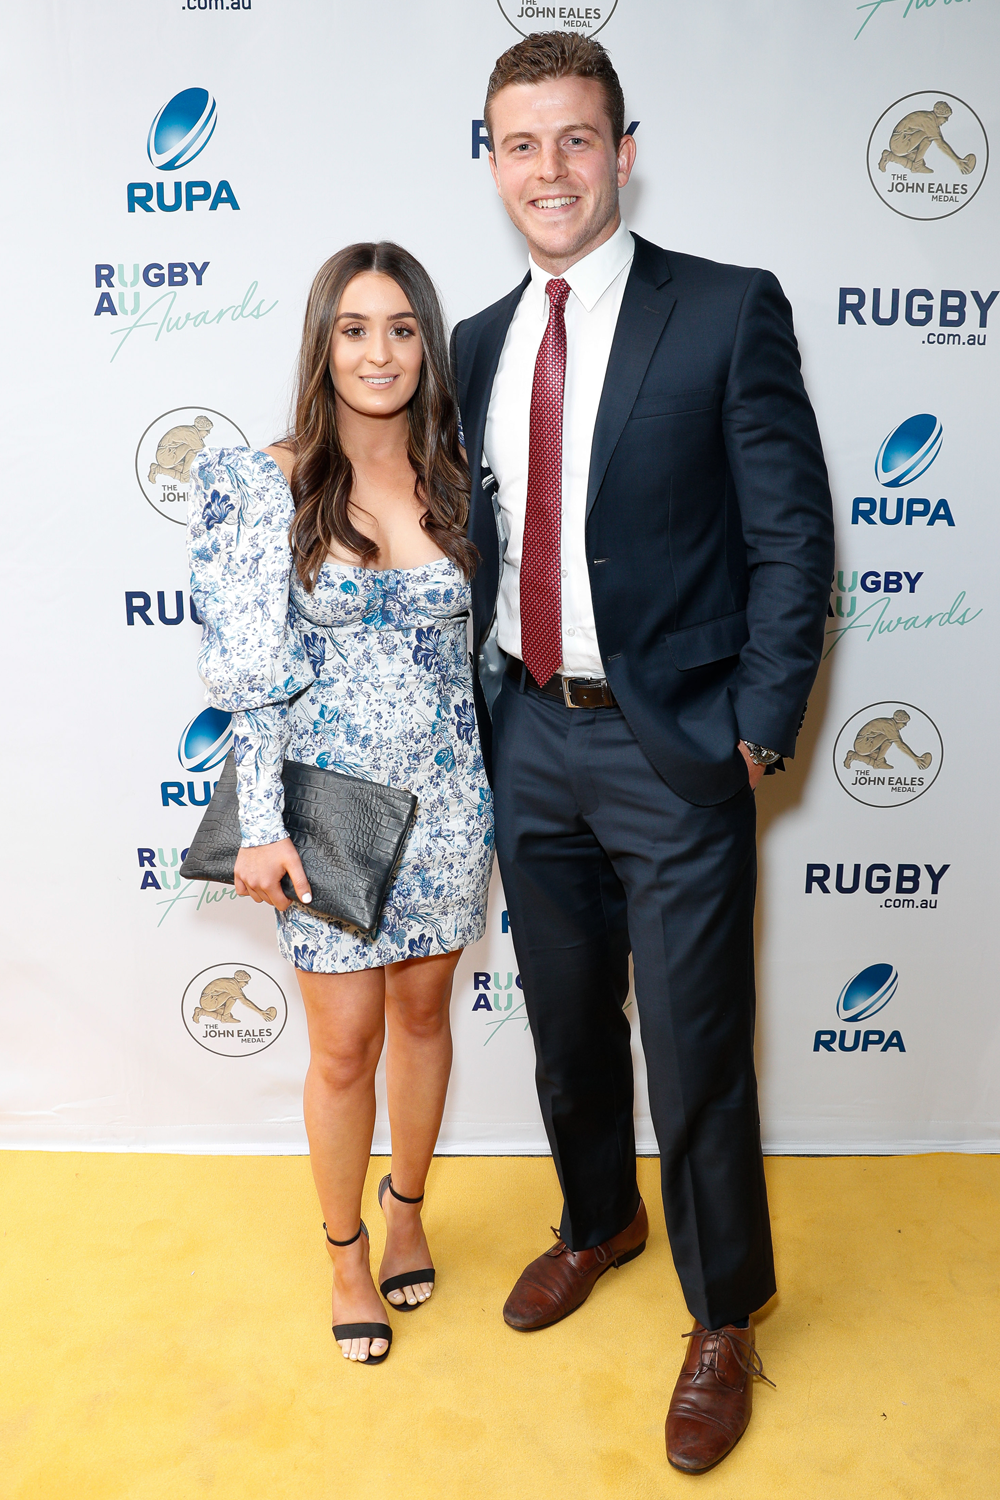 Nick Malouf and his partner at the Rugby Australia Awards. Photo: Getty Images